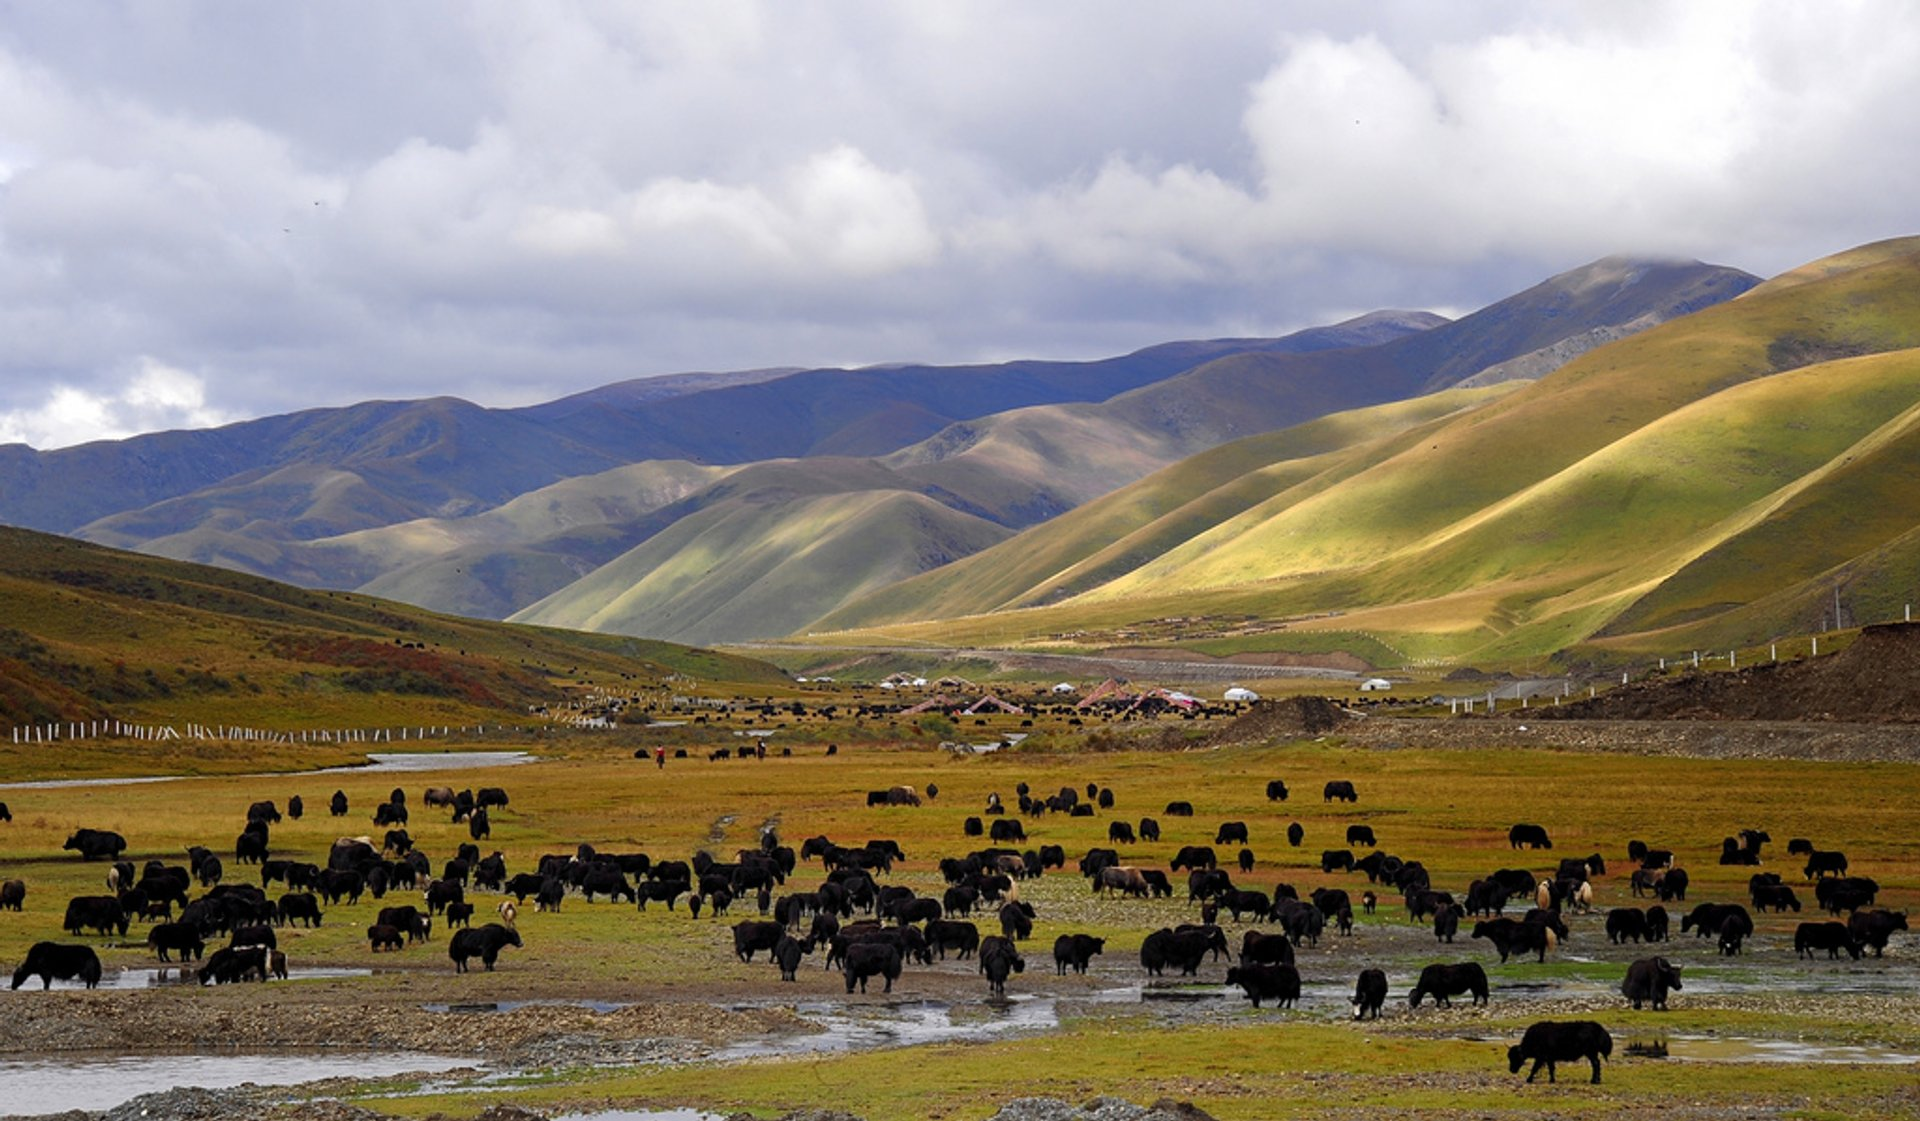 Best time to see Yaks in Tibet